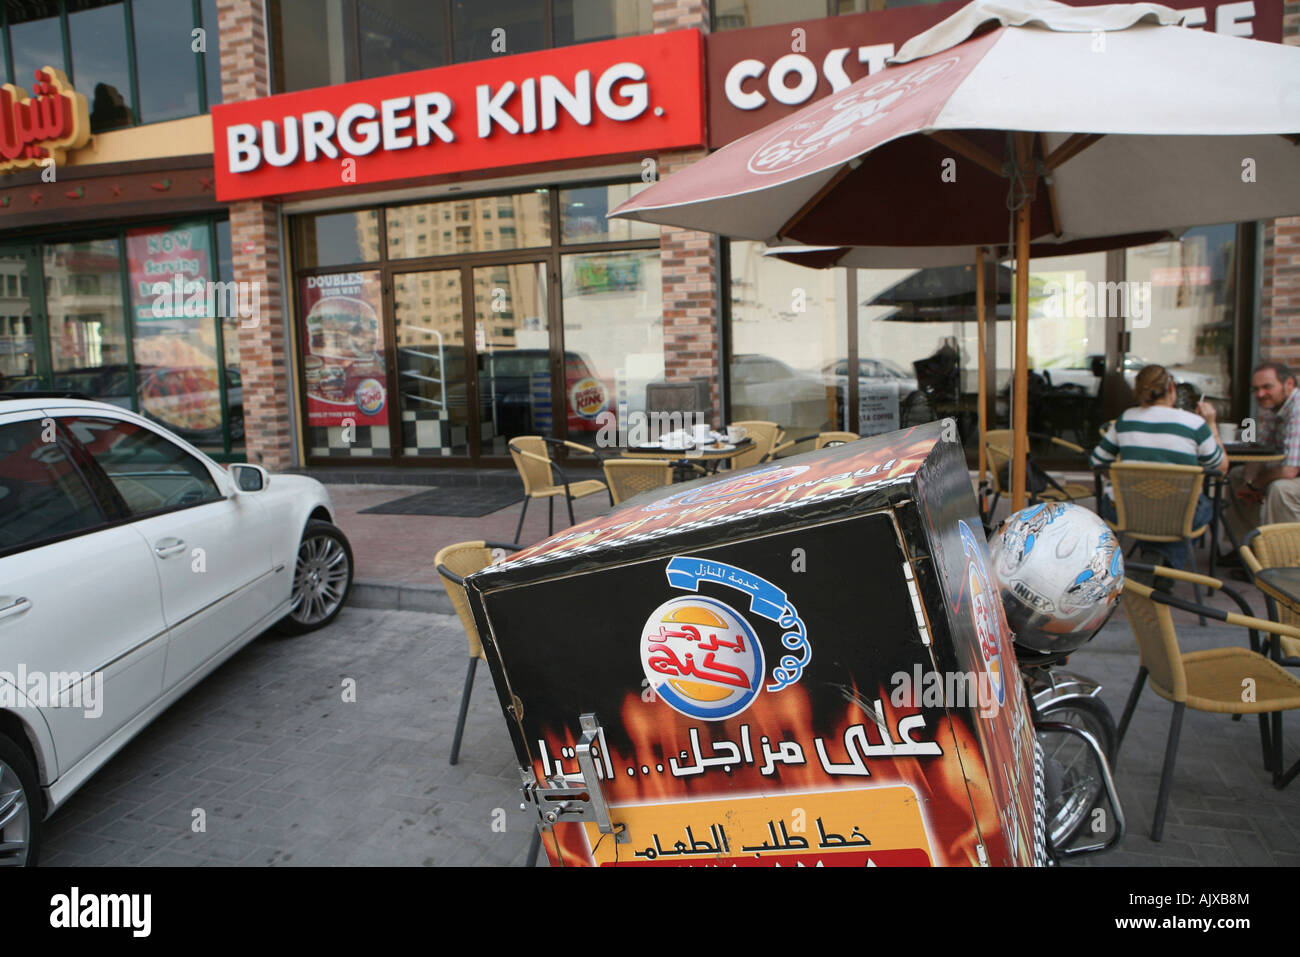 The home delivery motorbike sits in front of a Burger King